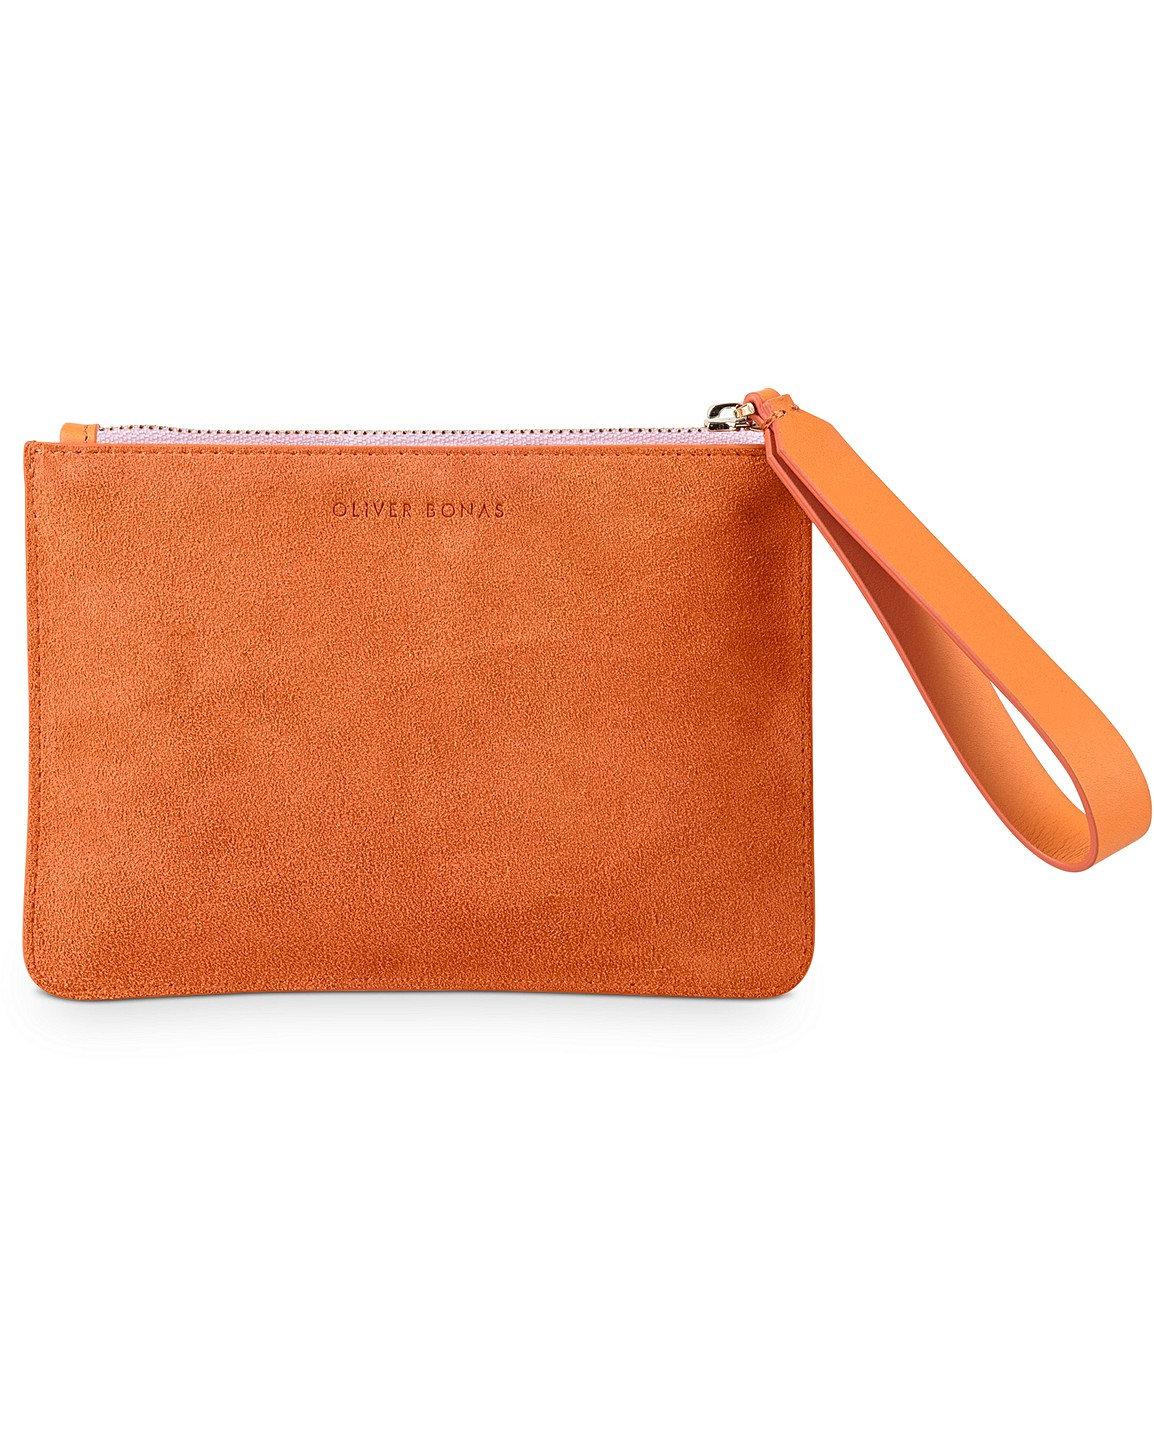 0555679a6b Nectarine Leather Pouch